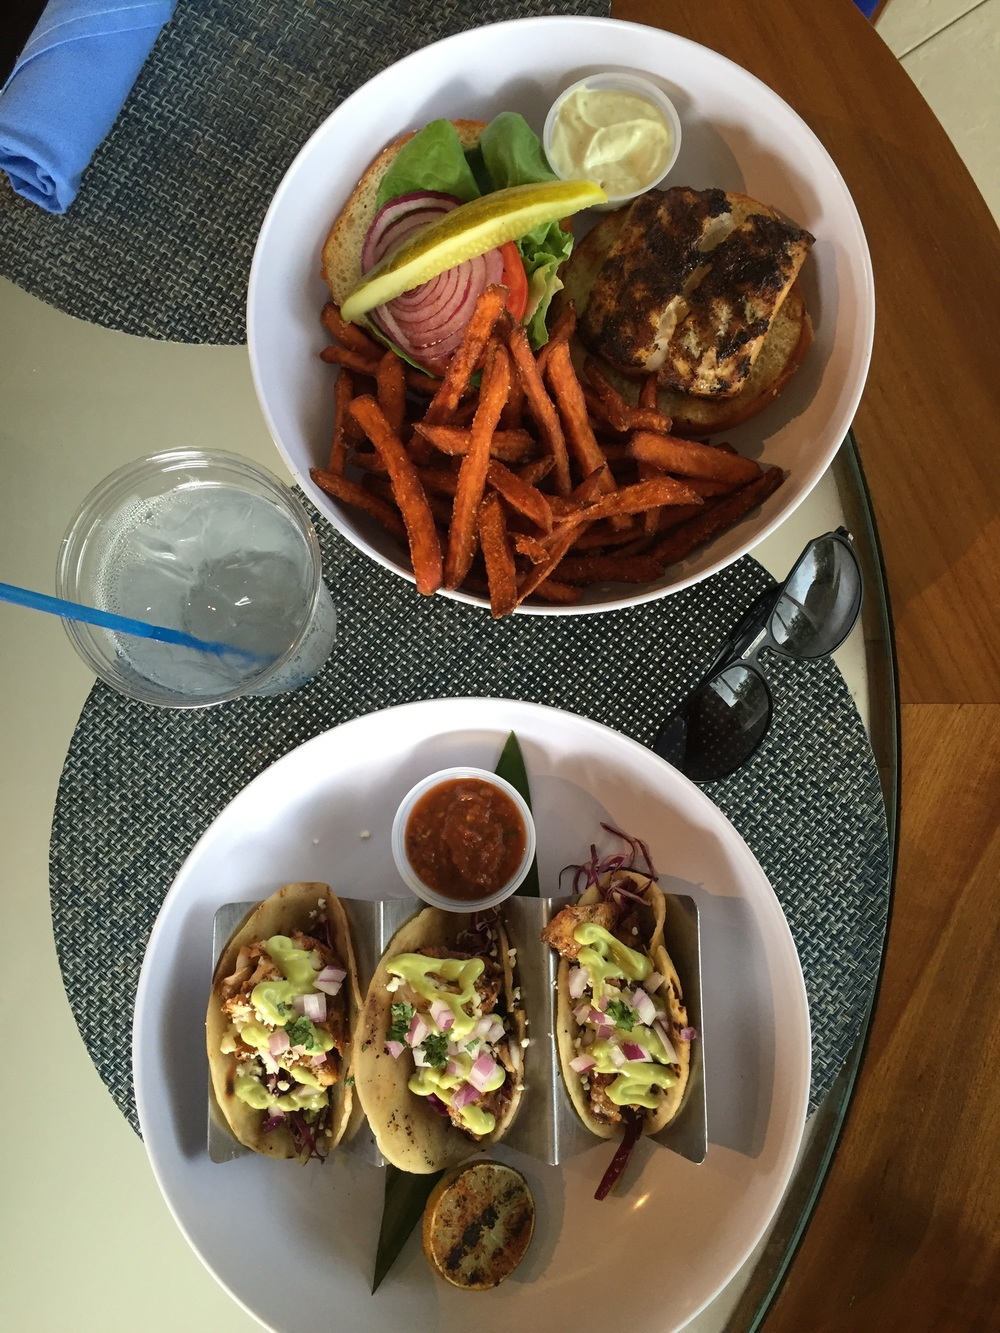 Fish tacos and blackened fishburger with a side of sweet potato fries.